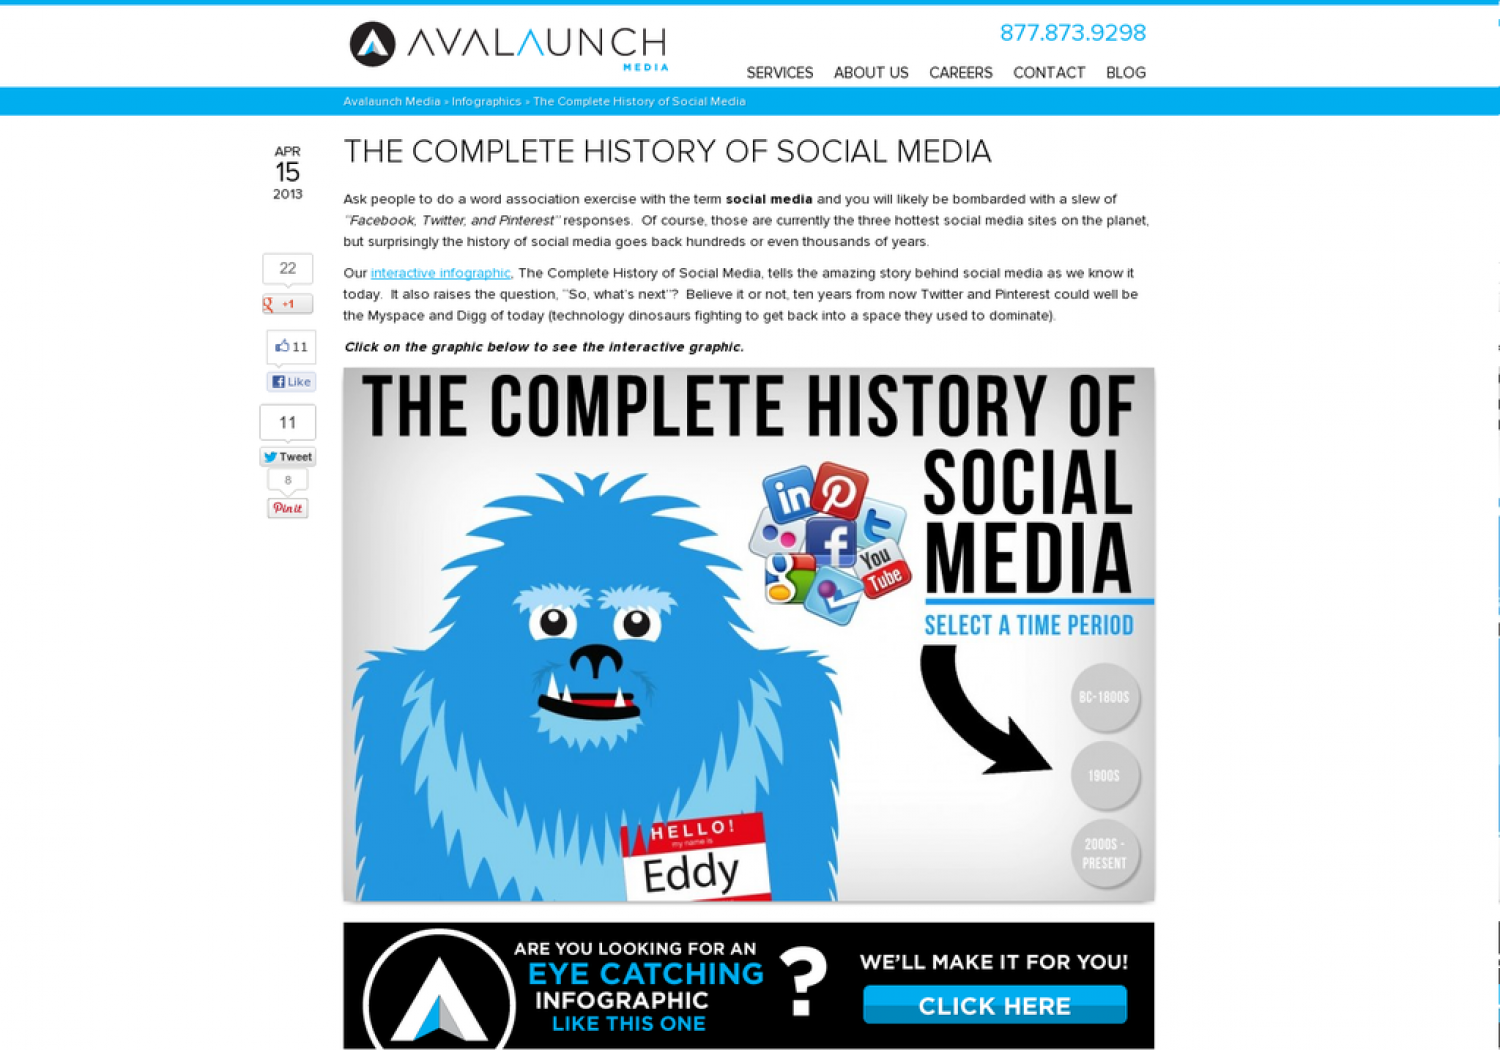 The Complete History of Social Media Infographic